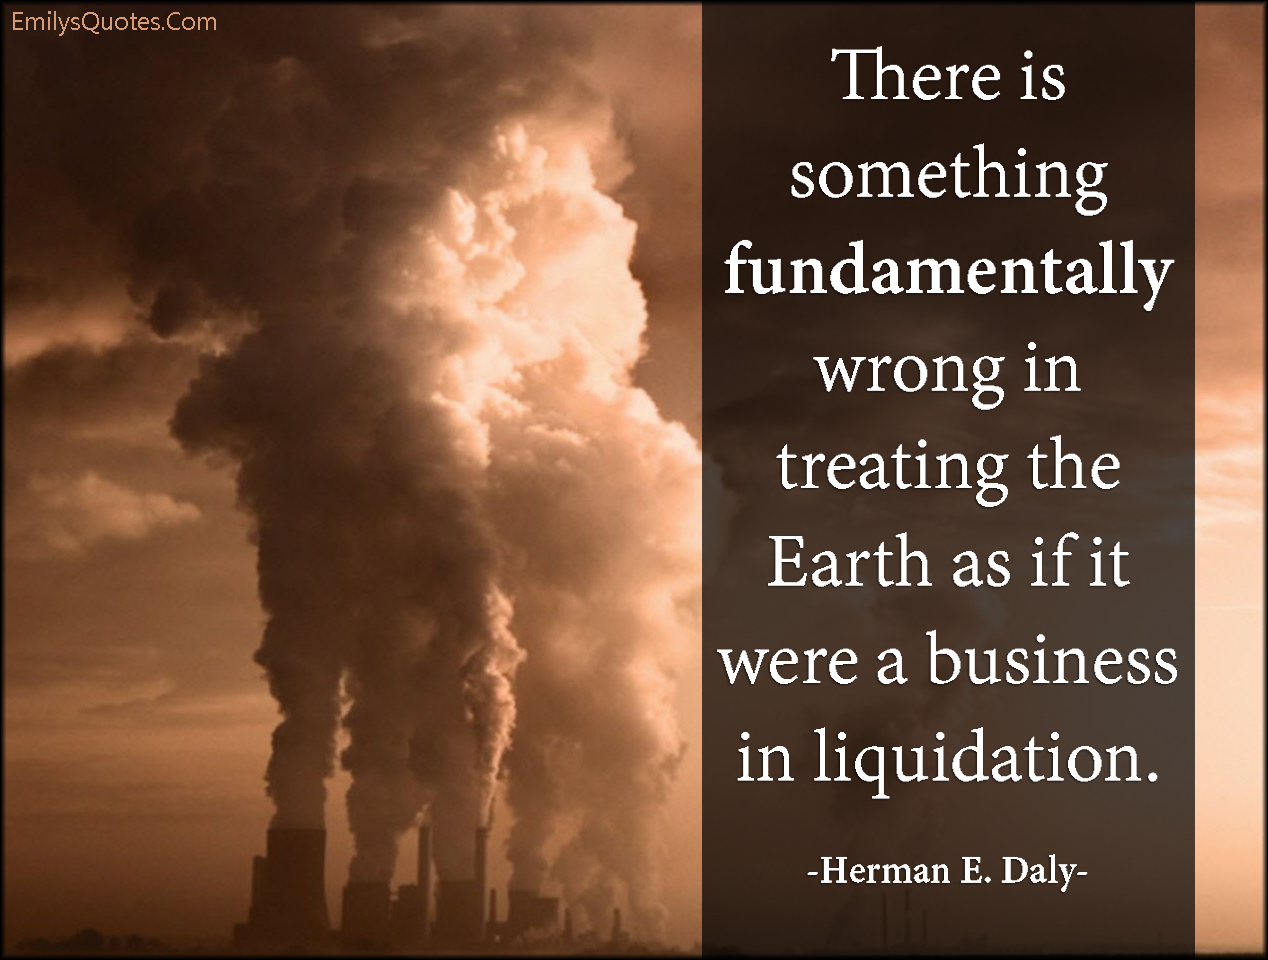 EmilysQuotes.Com - fundamentally wrong, treating, Earth, business of liquidation, nature, sad, mistake, Herman E. Daly